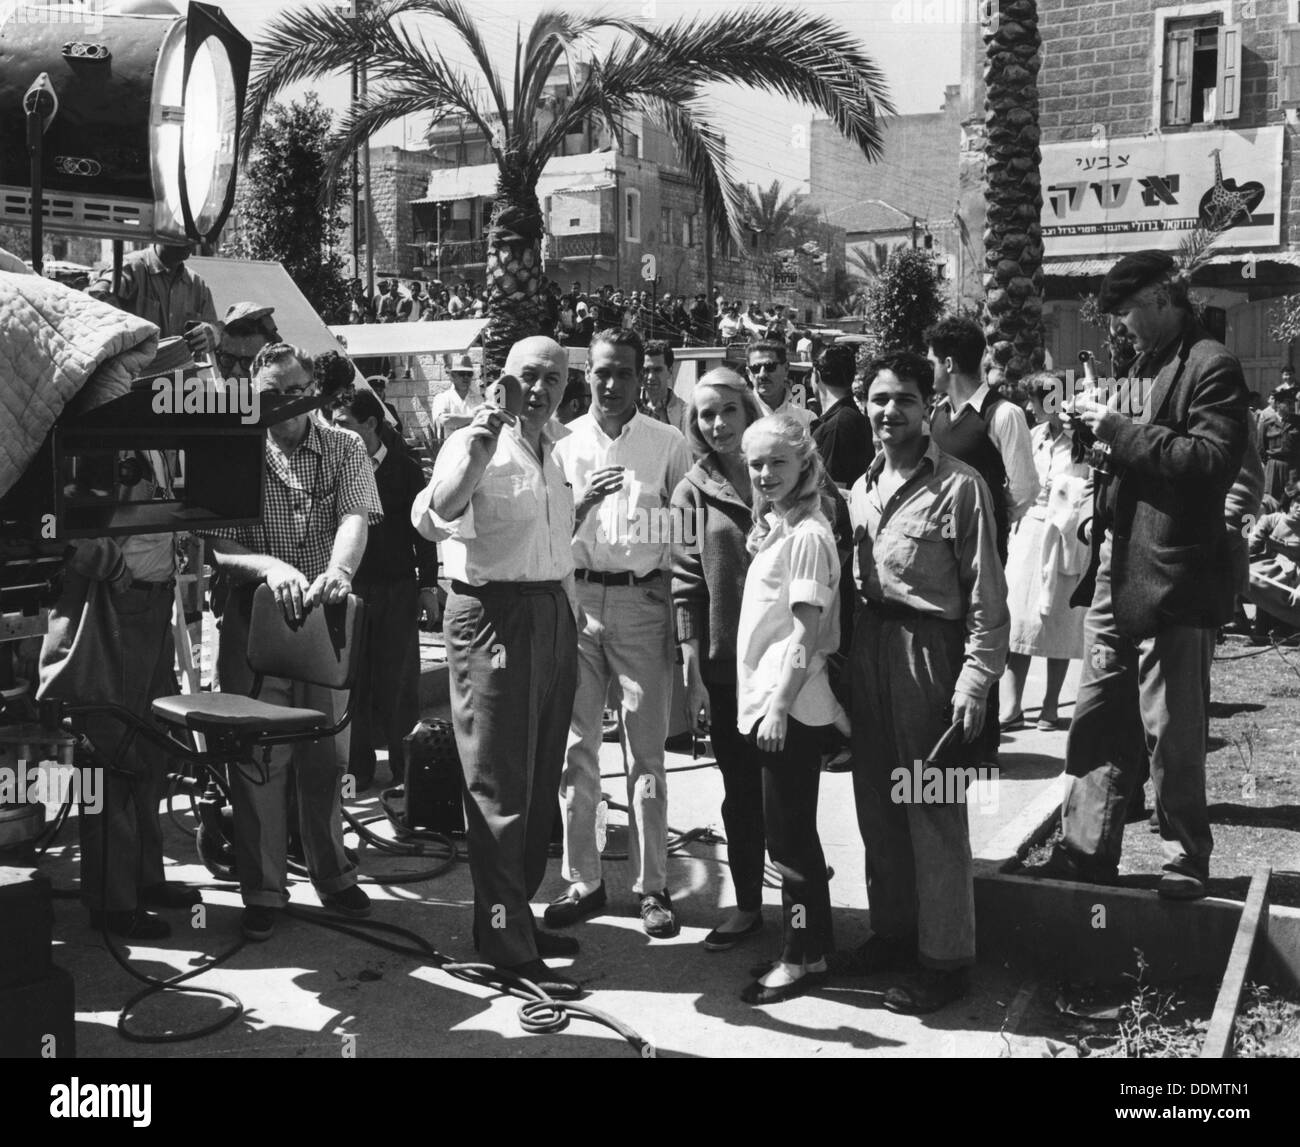 Scene during the filming of Exodus, 29 April 1960. - Stock Image